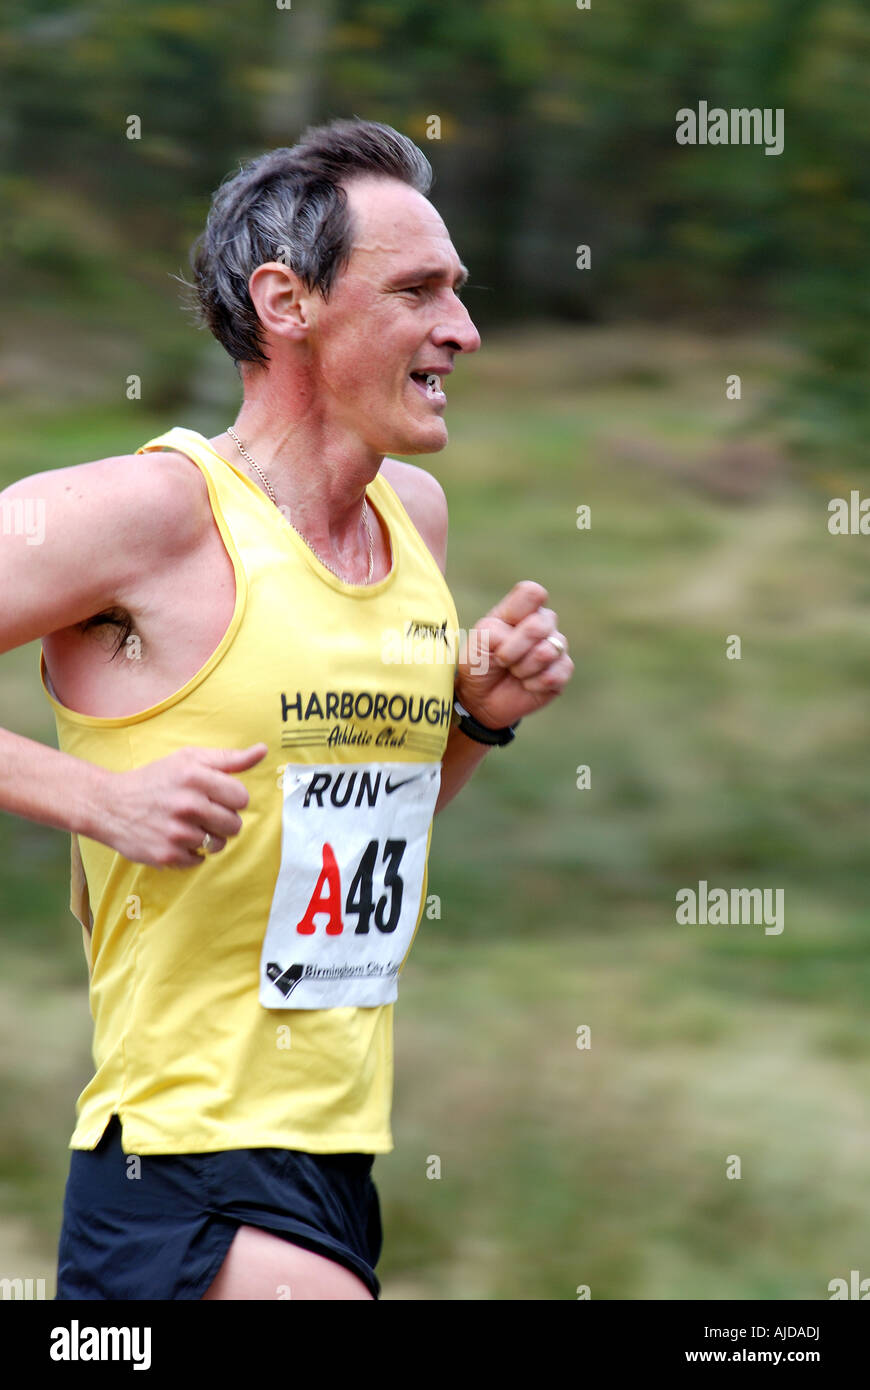 Runner in Men`s Midland 6 stage Road Relay Race at Sutton Park, West Midlands, England, UK - Stock Image